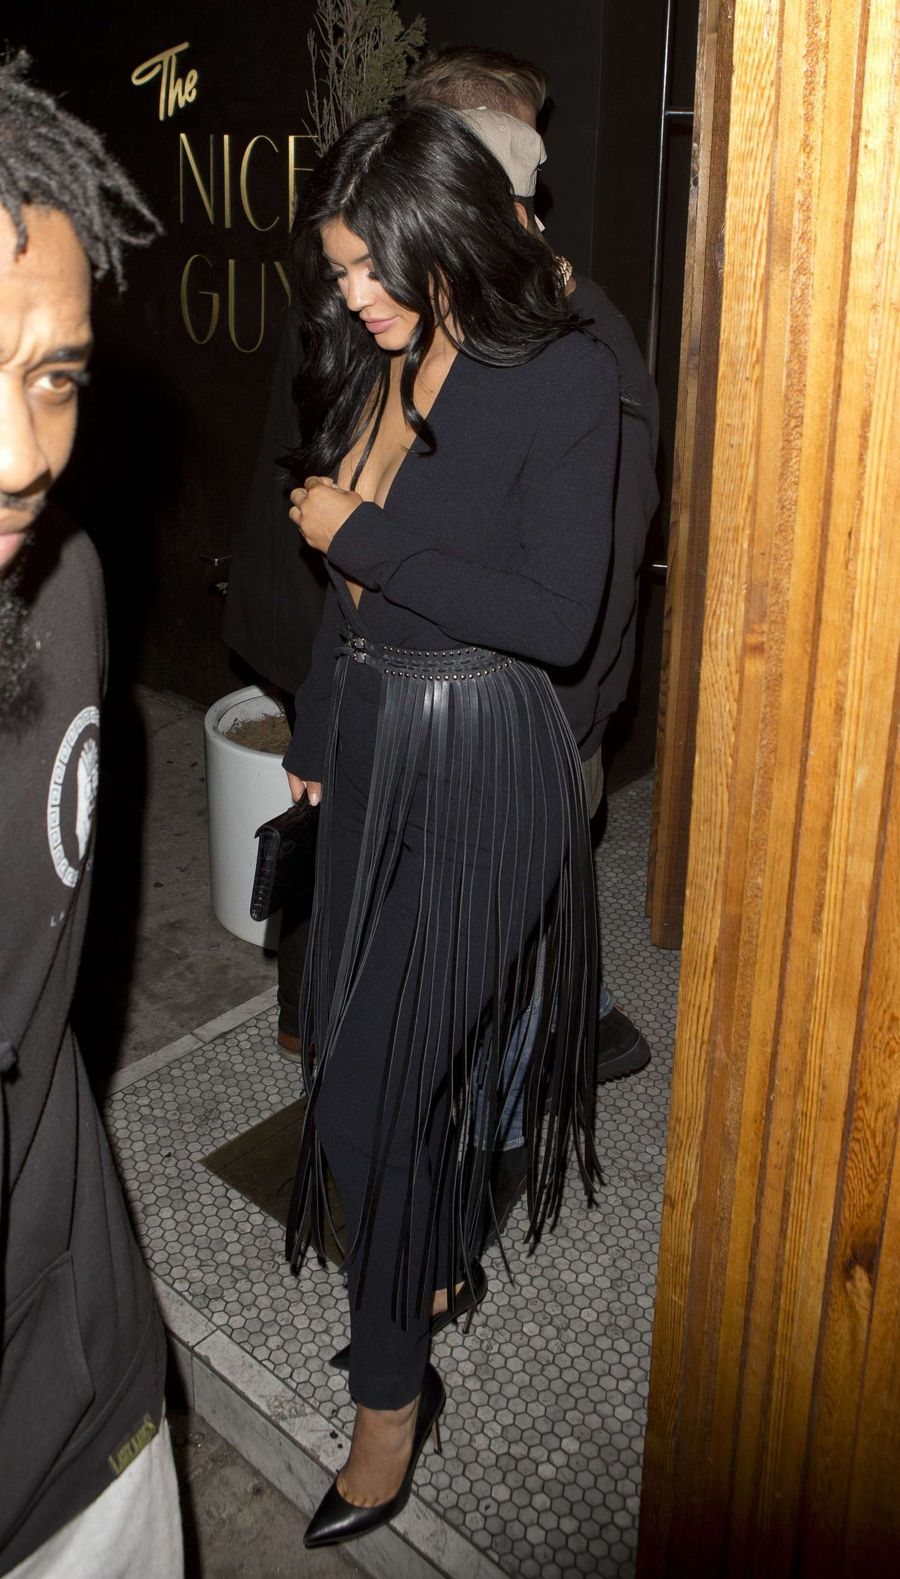 Kylie Jenner at the Nice Guy Club in West Hollywood